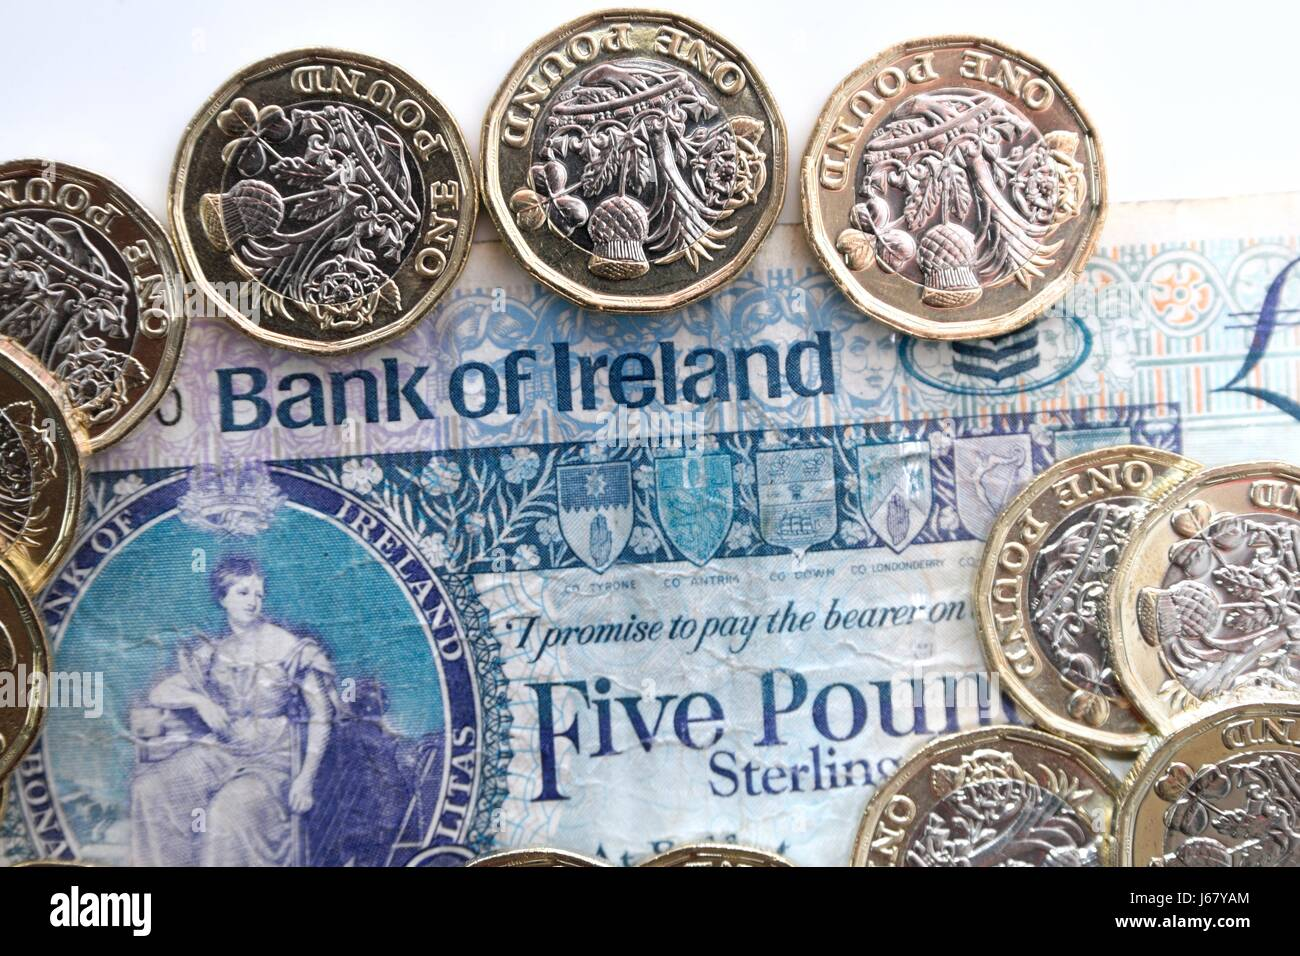 New pound coins and bank of Ireland note - Stock Image